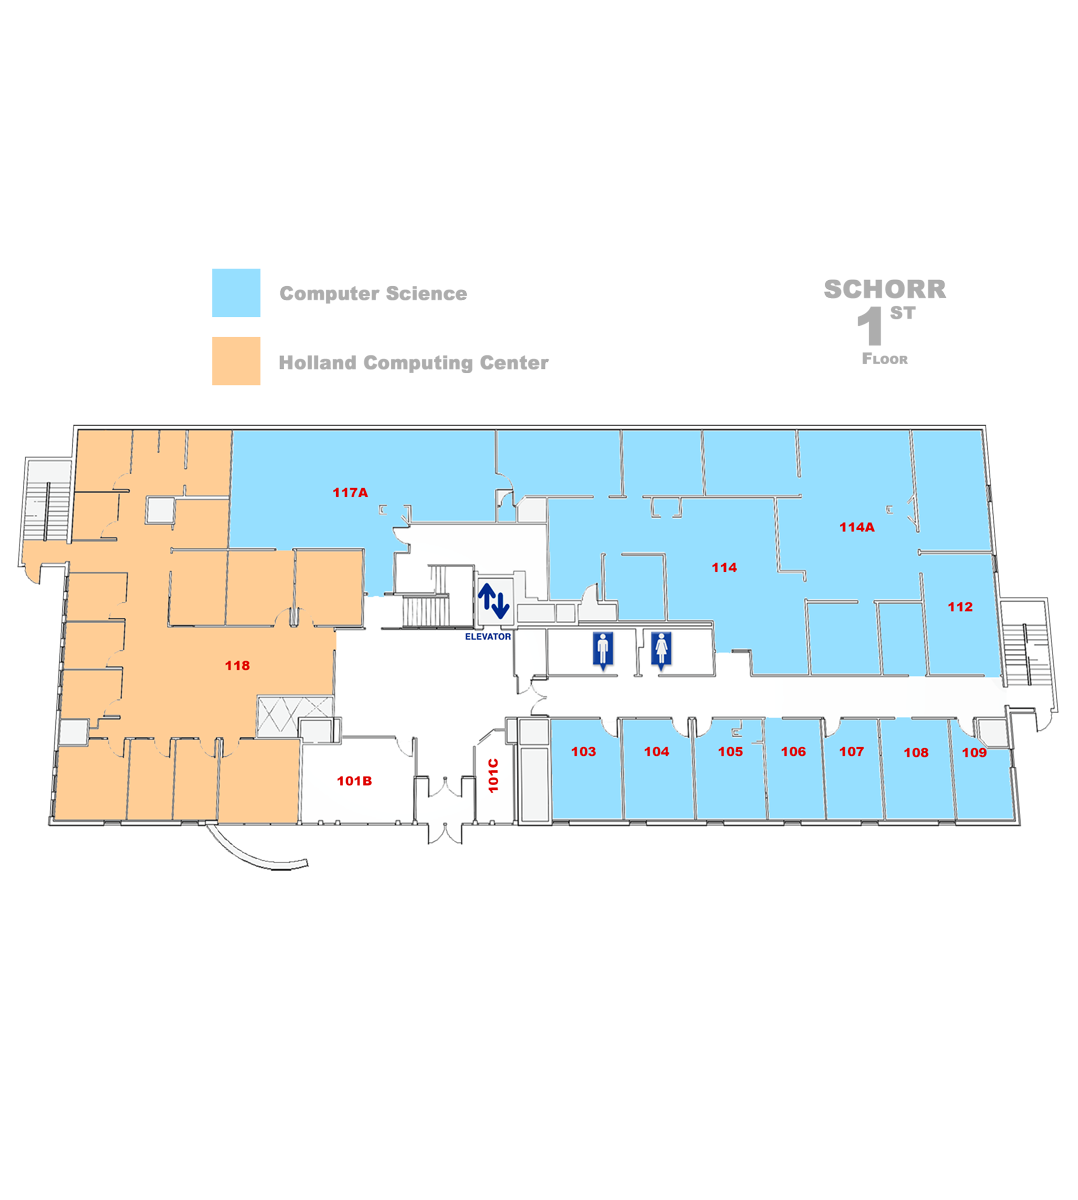 Maps Of Avery Hall And Schorr Center Computer Science